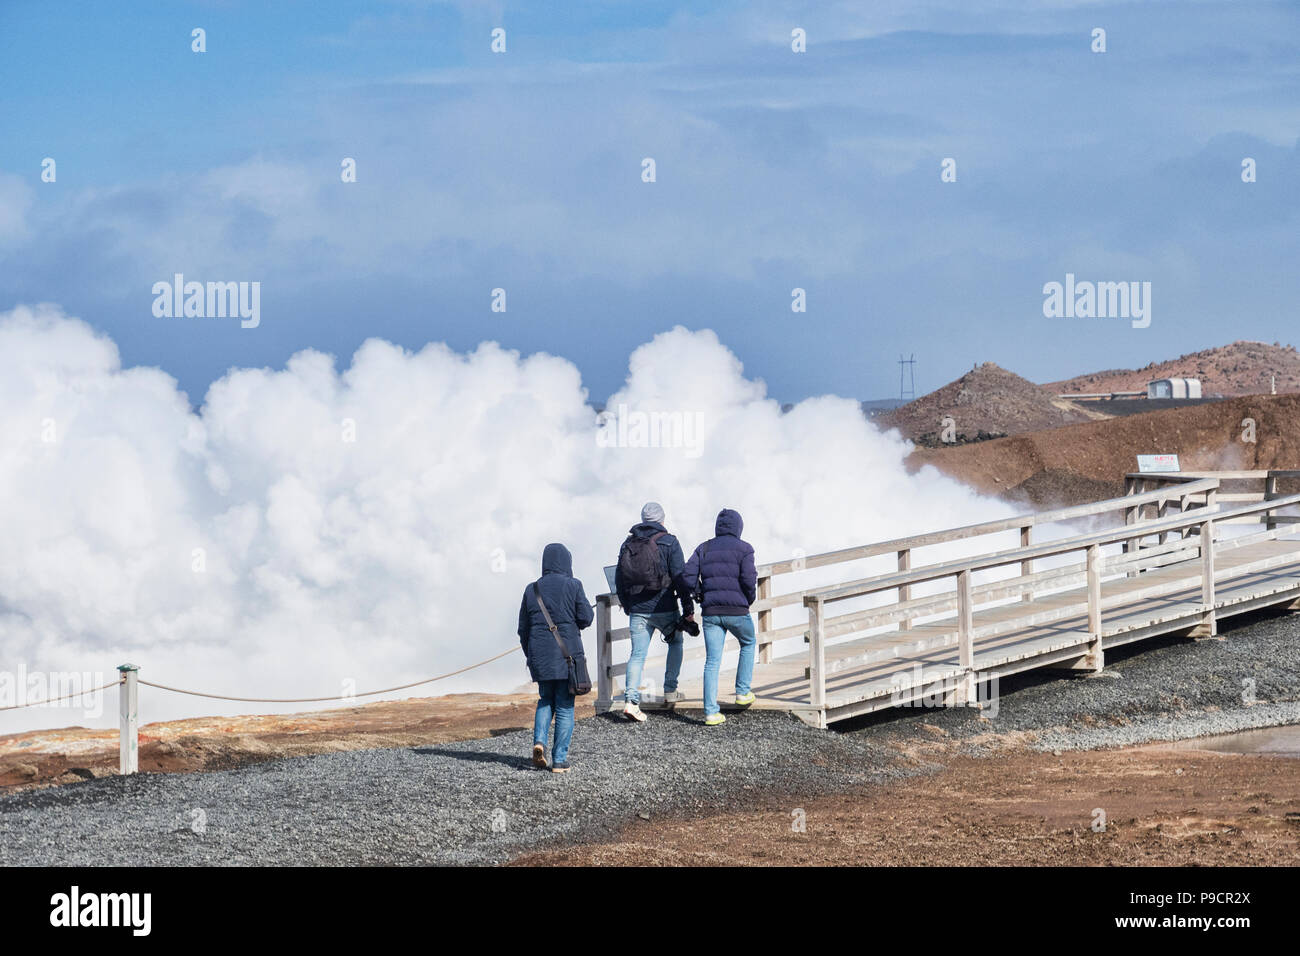 18 April 2018: Reykjanes Peninsula, Iceland - Tourists at Gunnuhver Hot Springs. - Stock Image